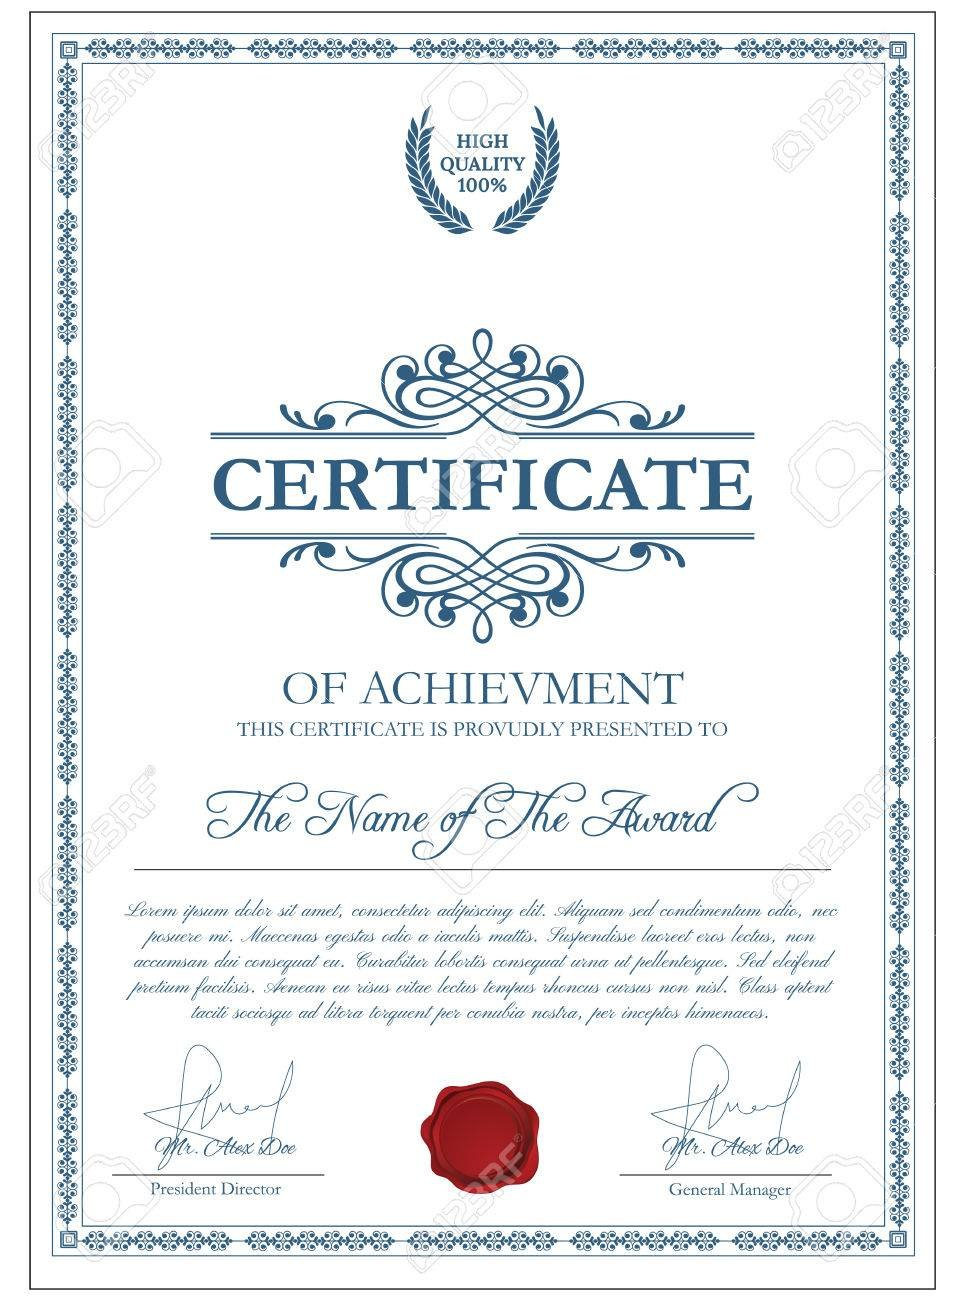 Certificate Template With Guilloche Elements Blue Diploma Border Regarding Validation Certificate Template